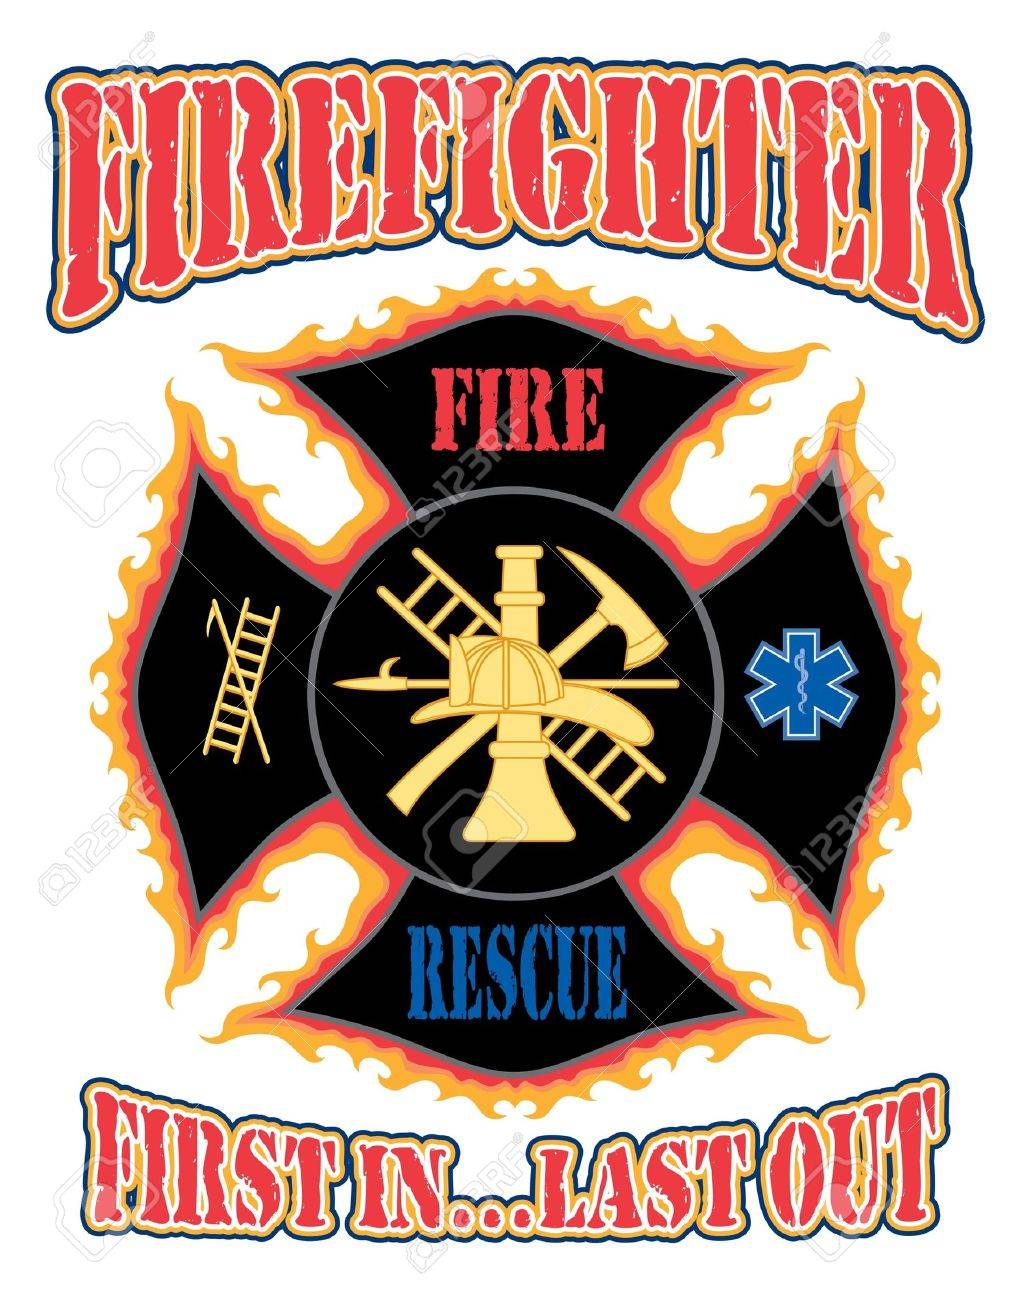 Firefighter first in design is an illustration of a flaming firefighter first in design is an illustration of a flaming firefighter cross with symbols for firefighting buycottarizona Choice Image